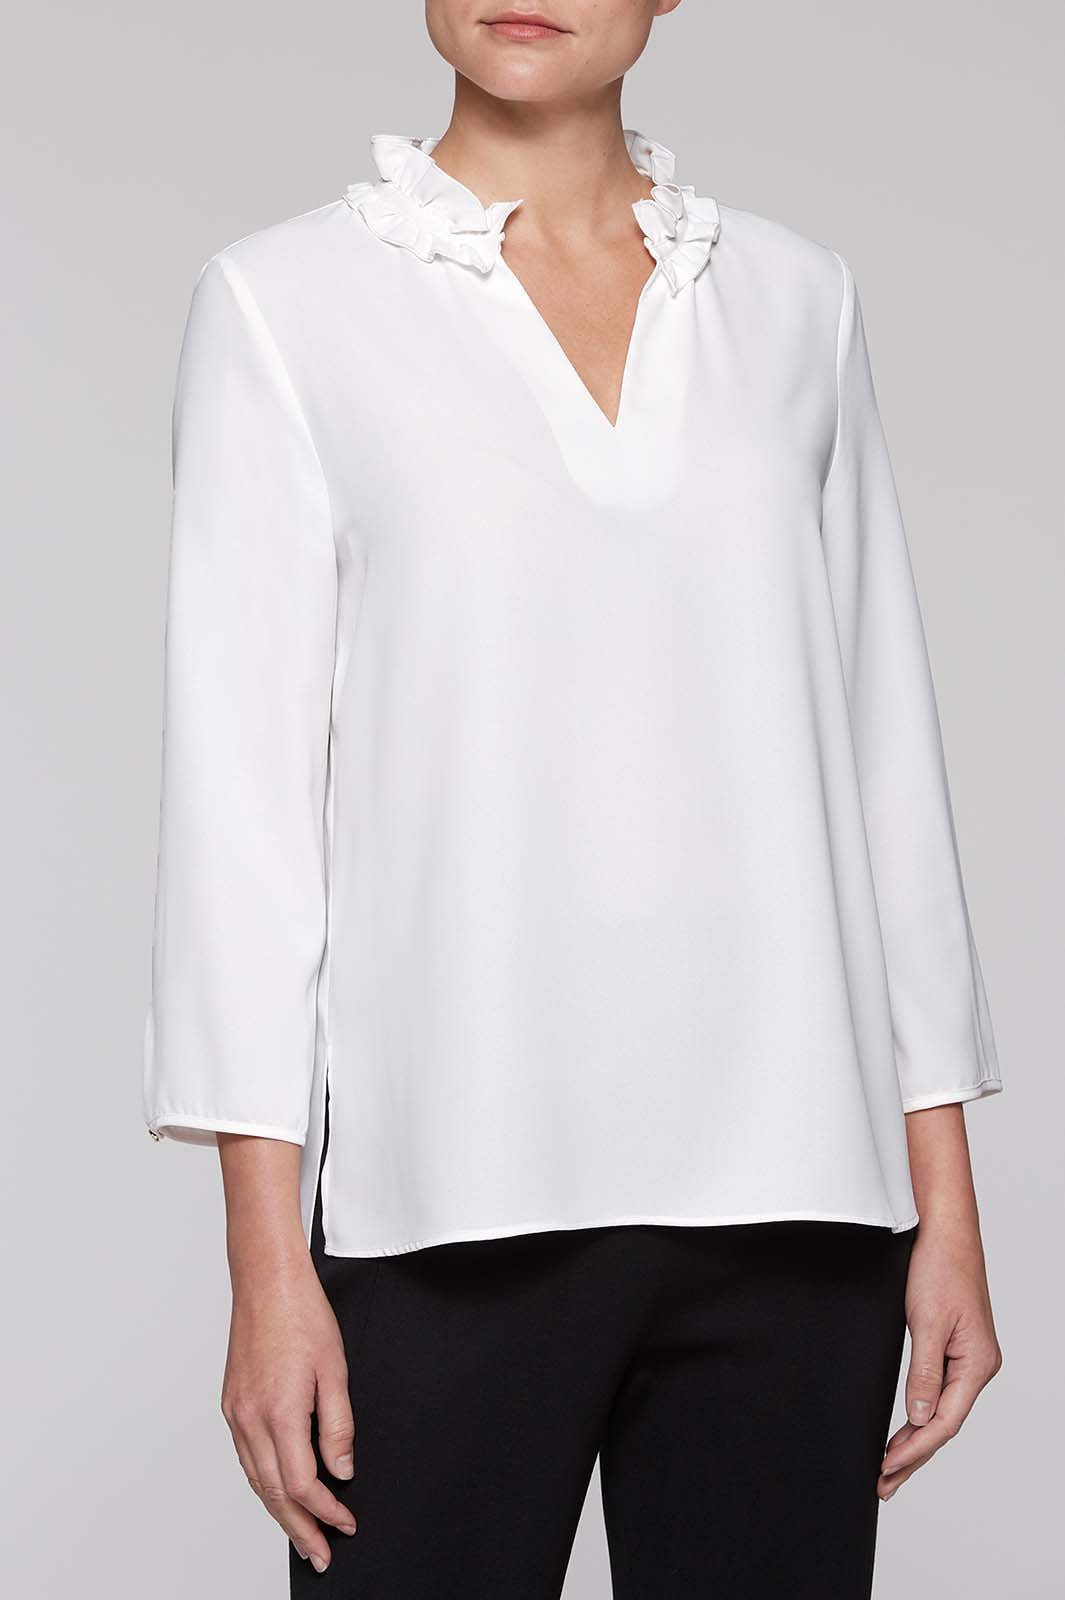 25a0dc100b3db7 Women s White Ruffle Neck Blouse